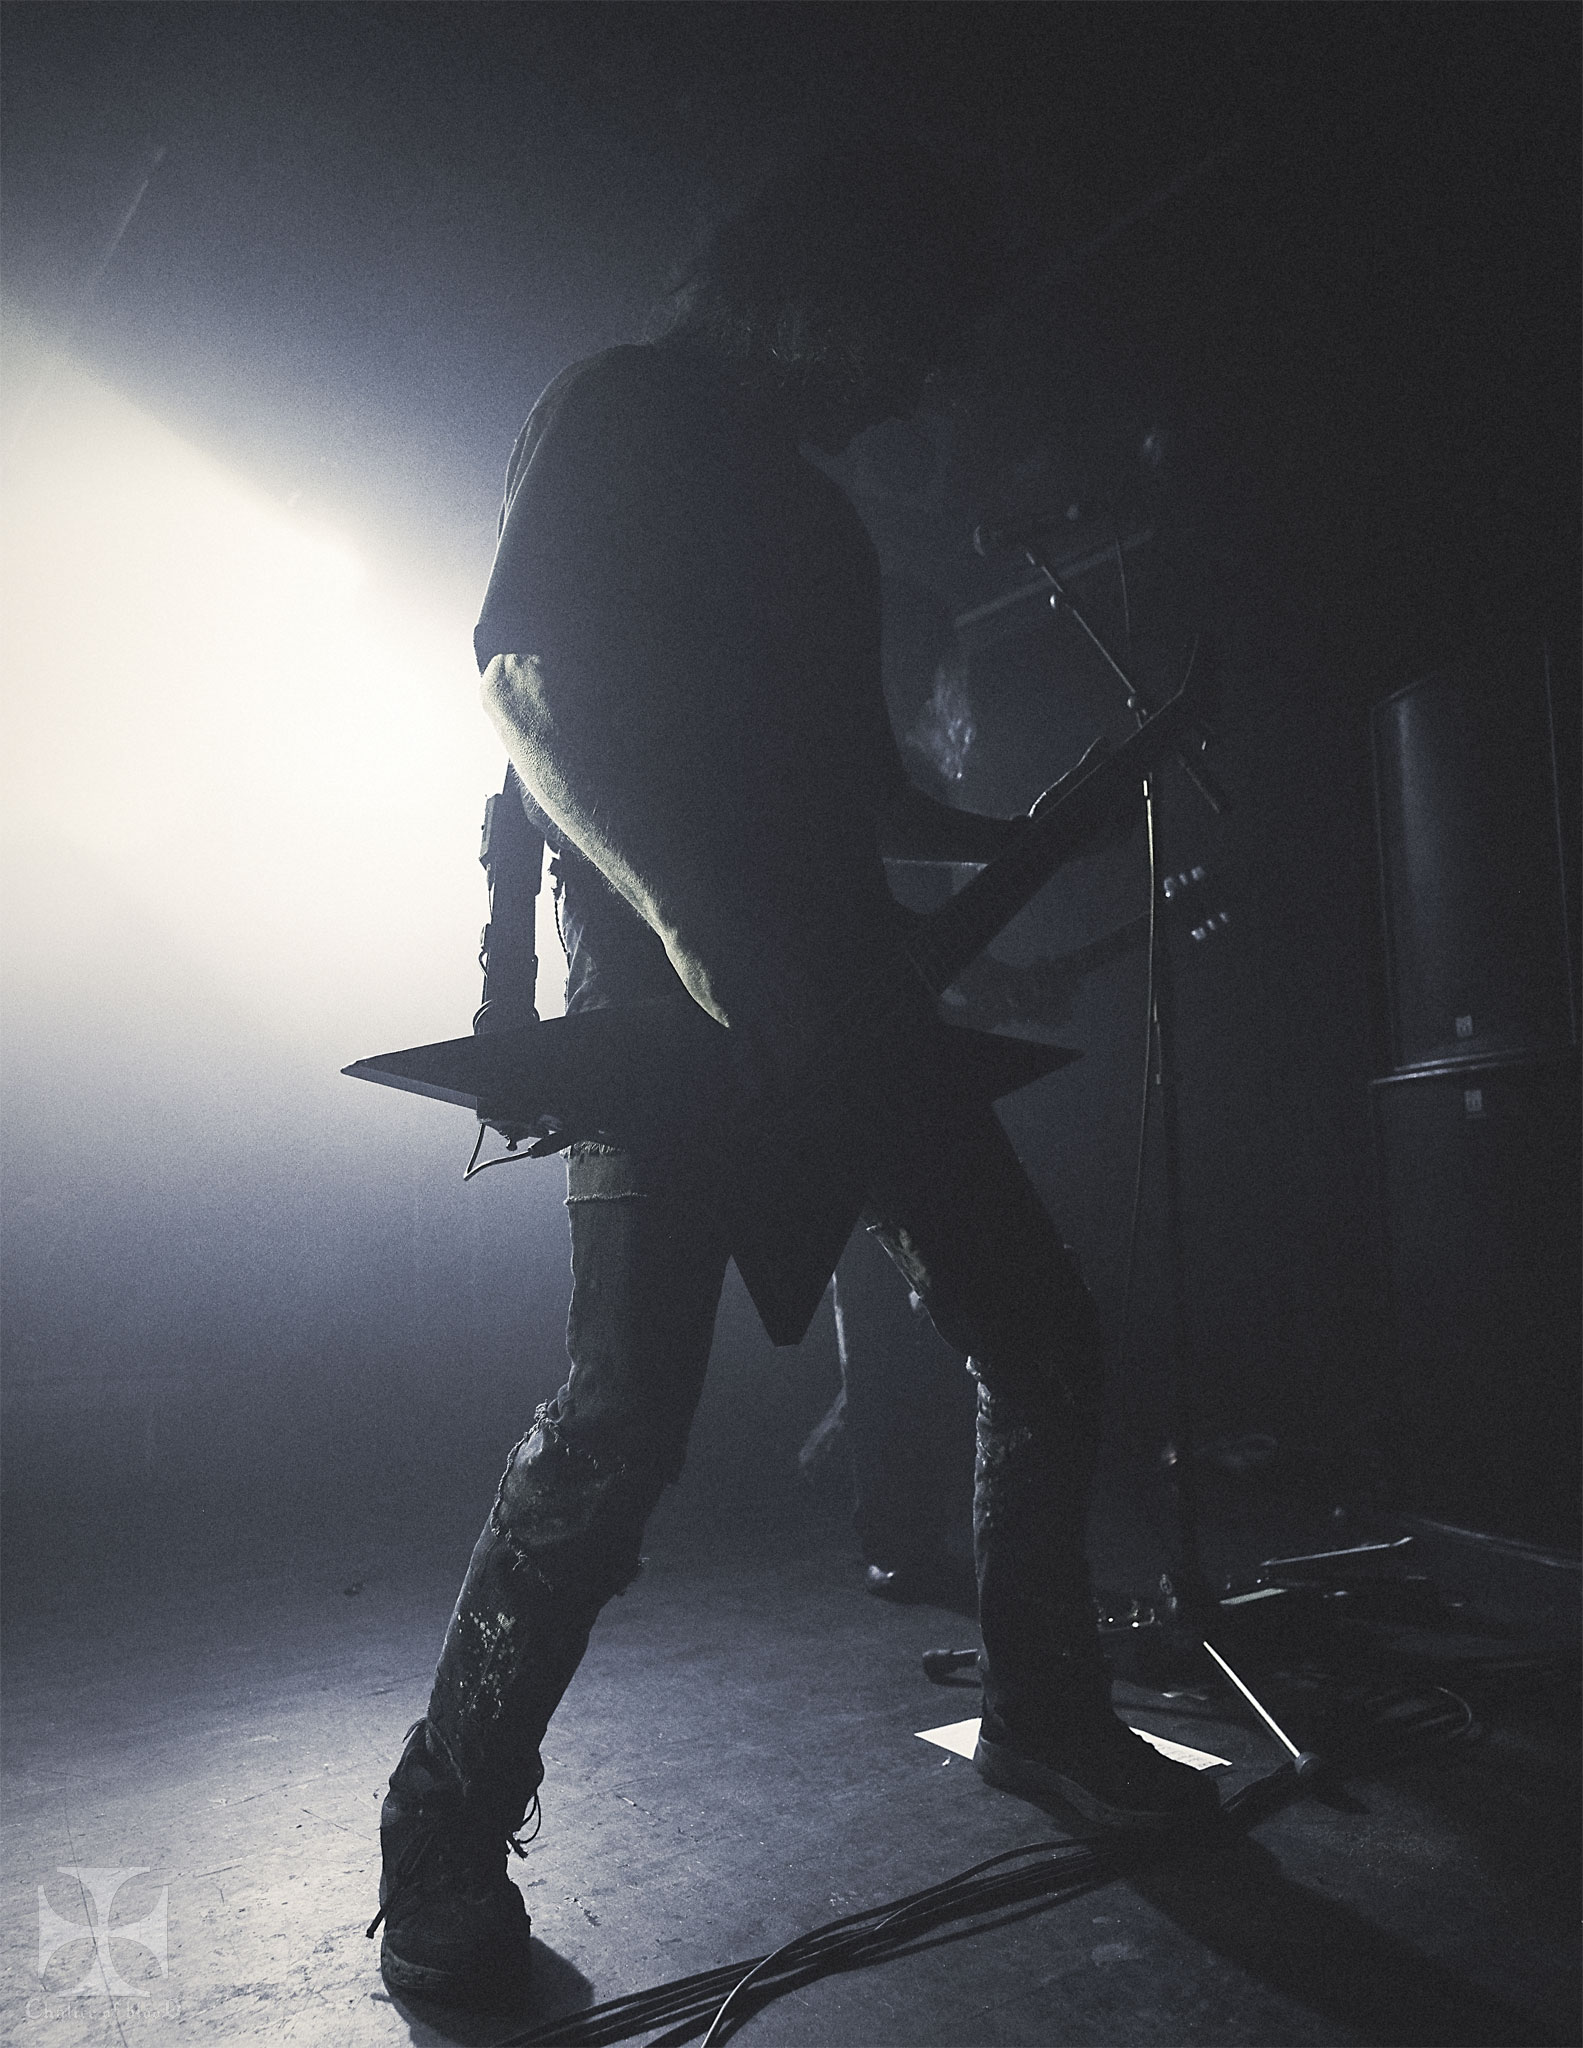 Kreator-0034-Exposure-watermarked.jpg